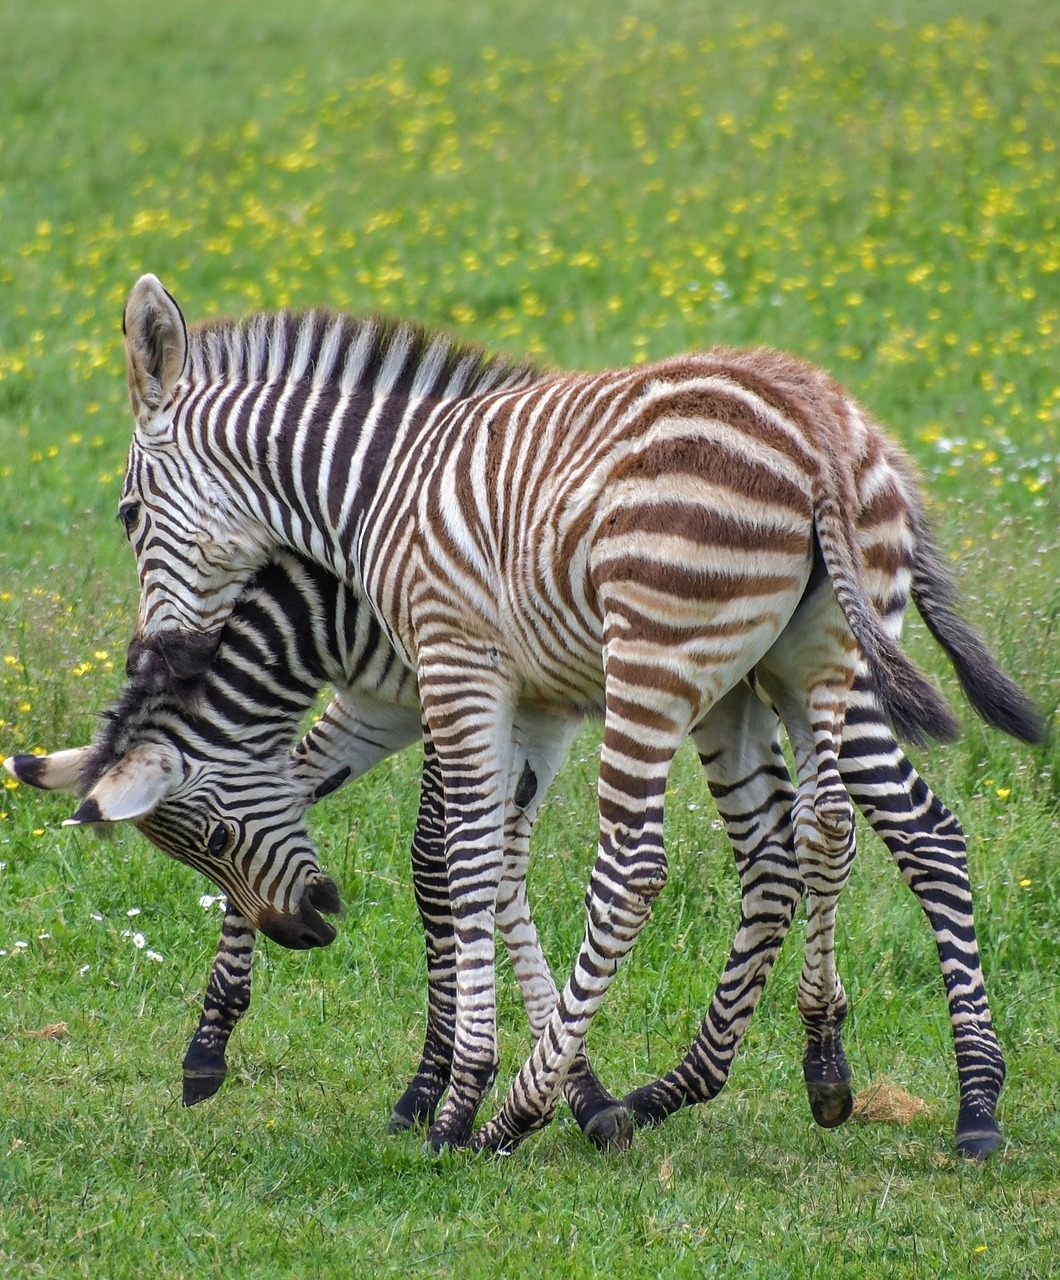 Two young zebras enjoy playing.